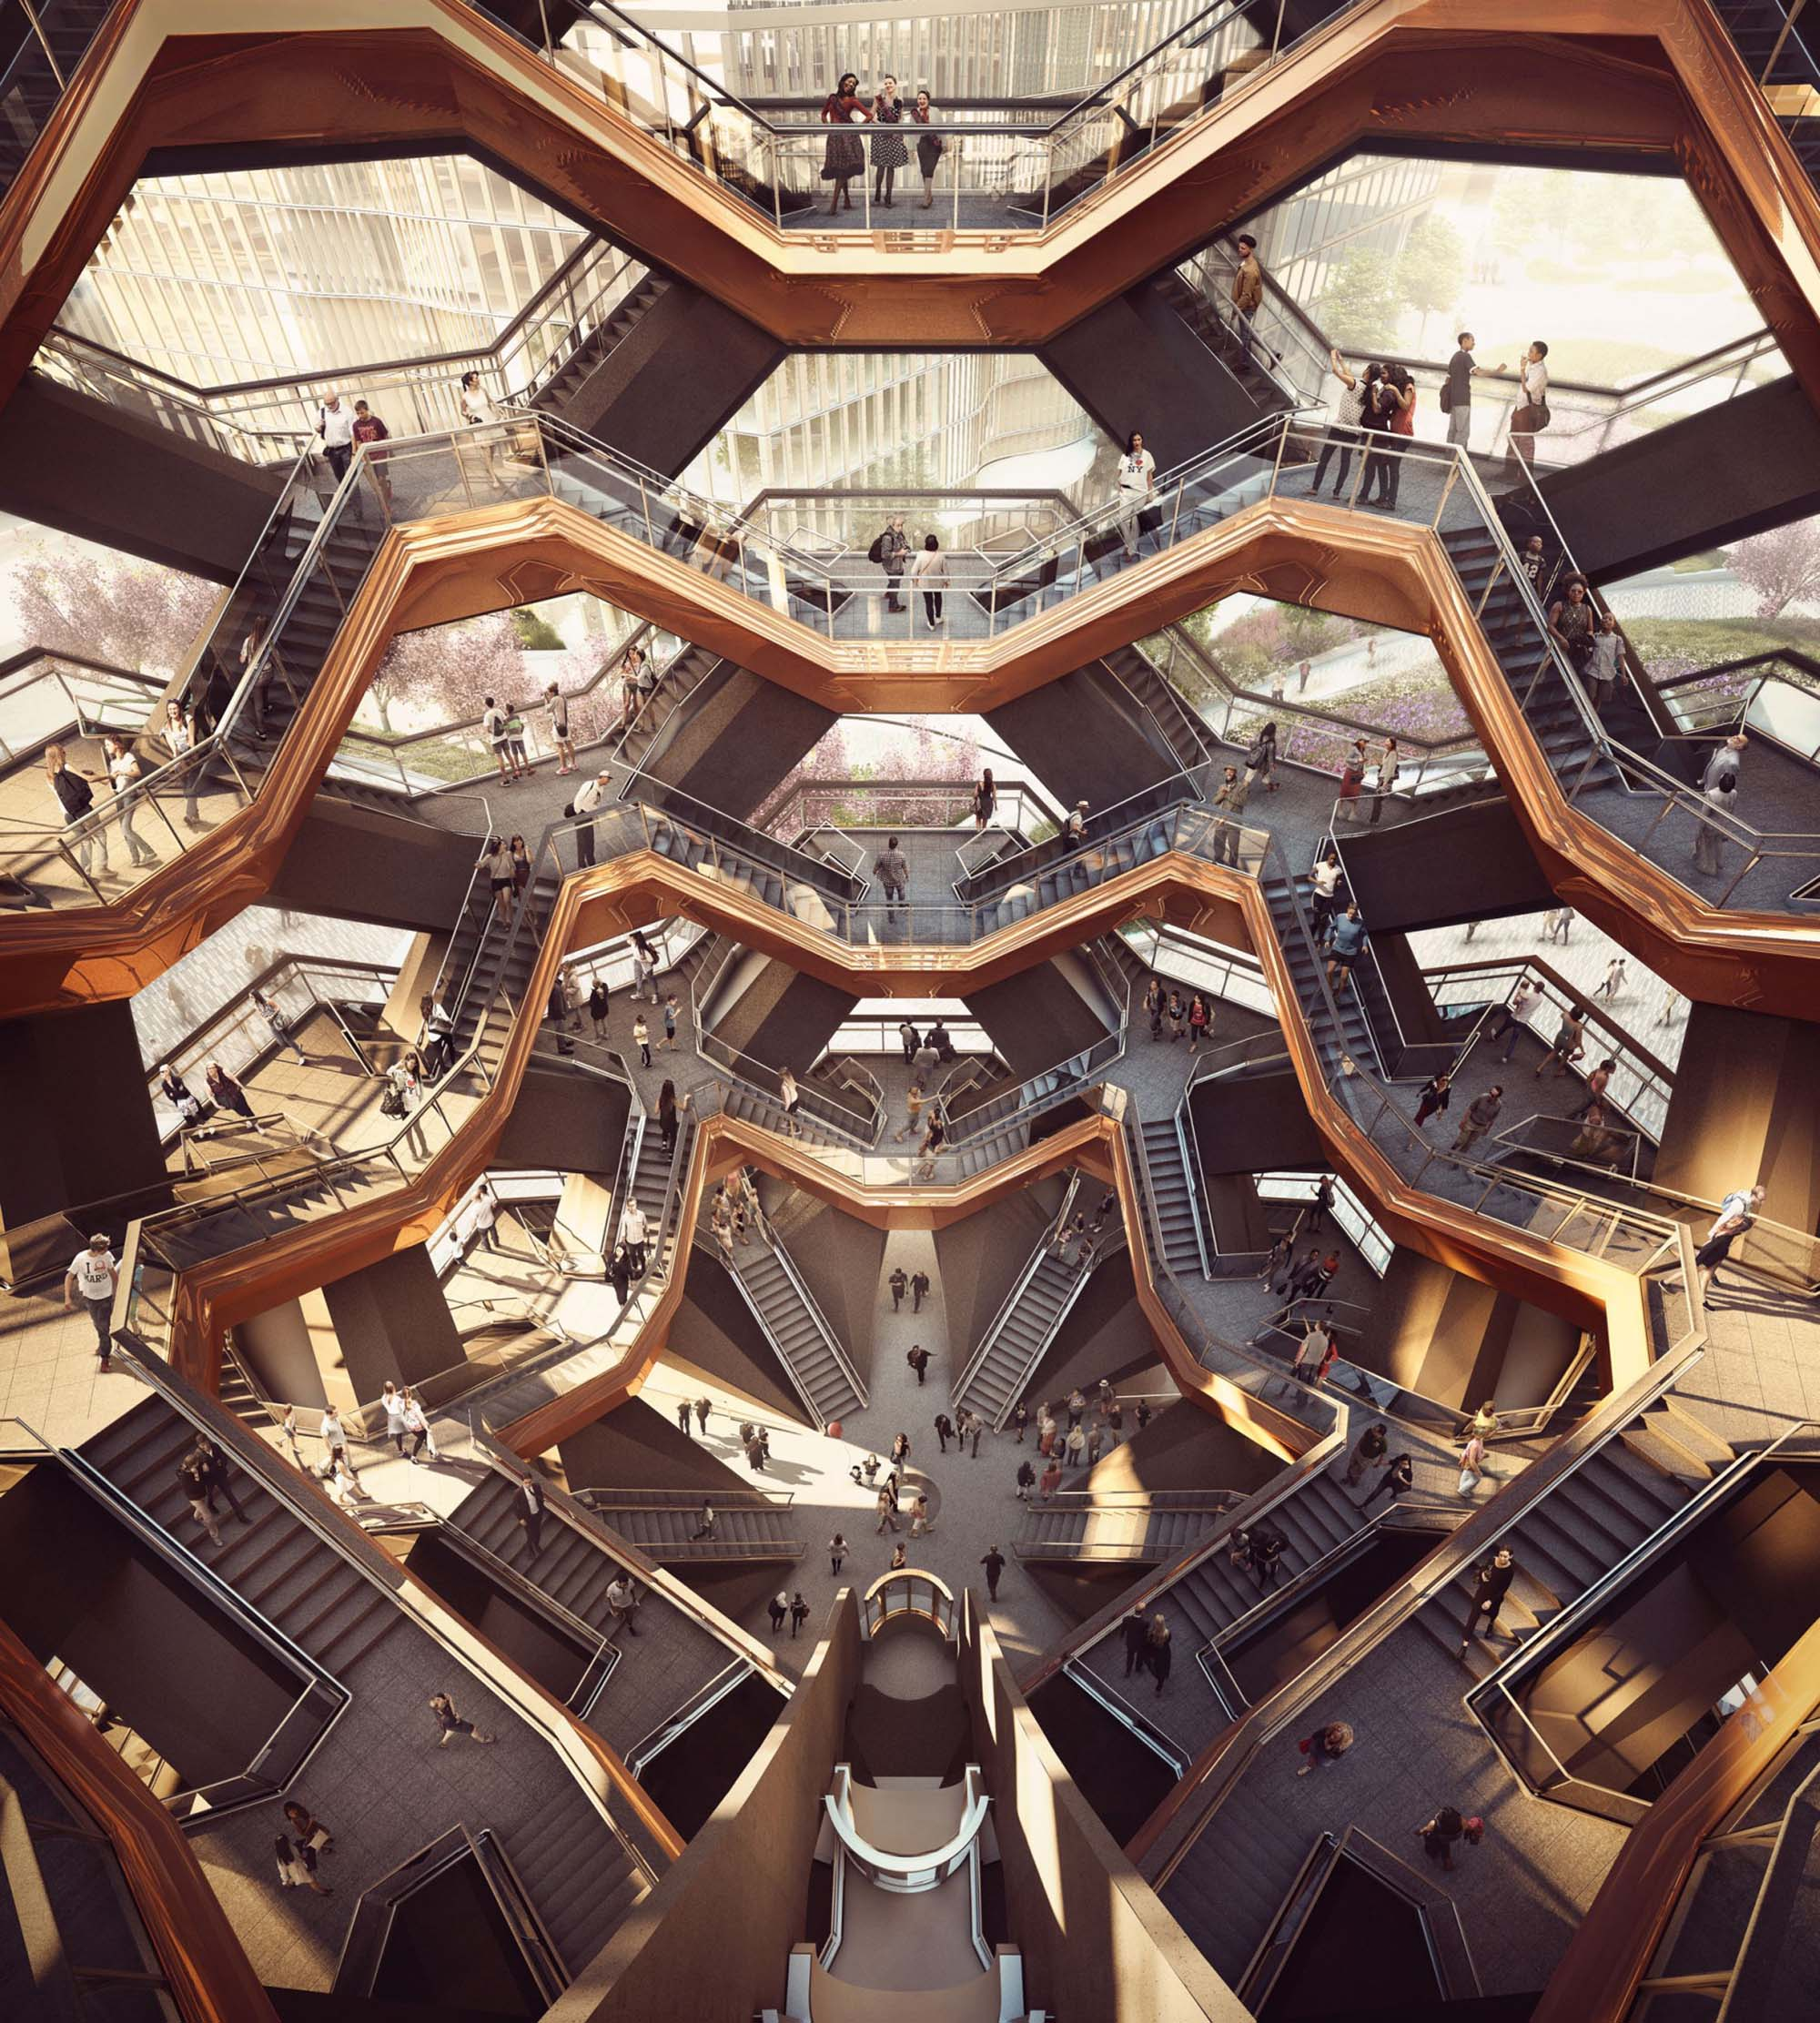 Vessel design by Heatherwick Studio